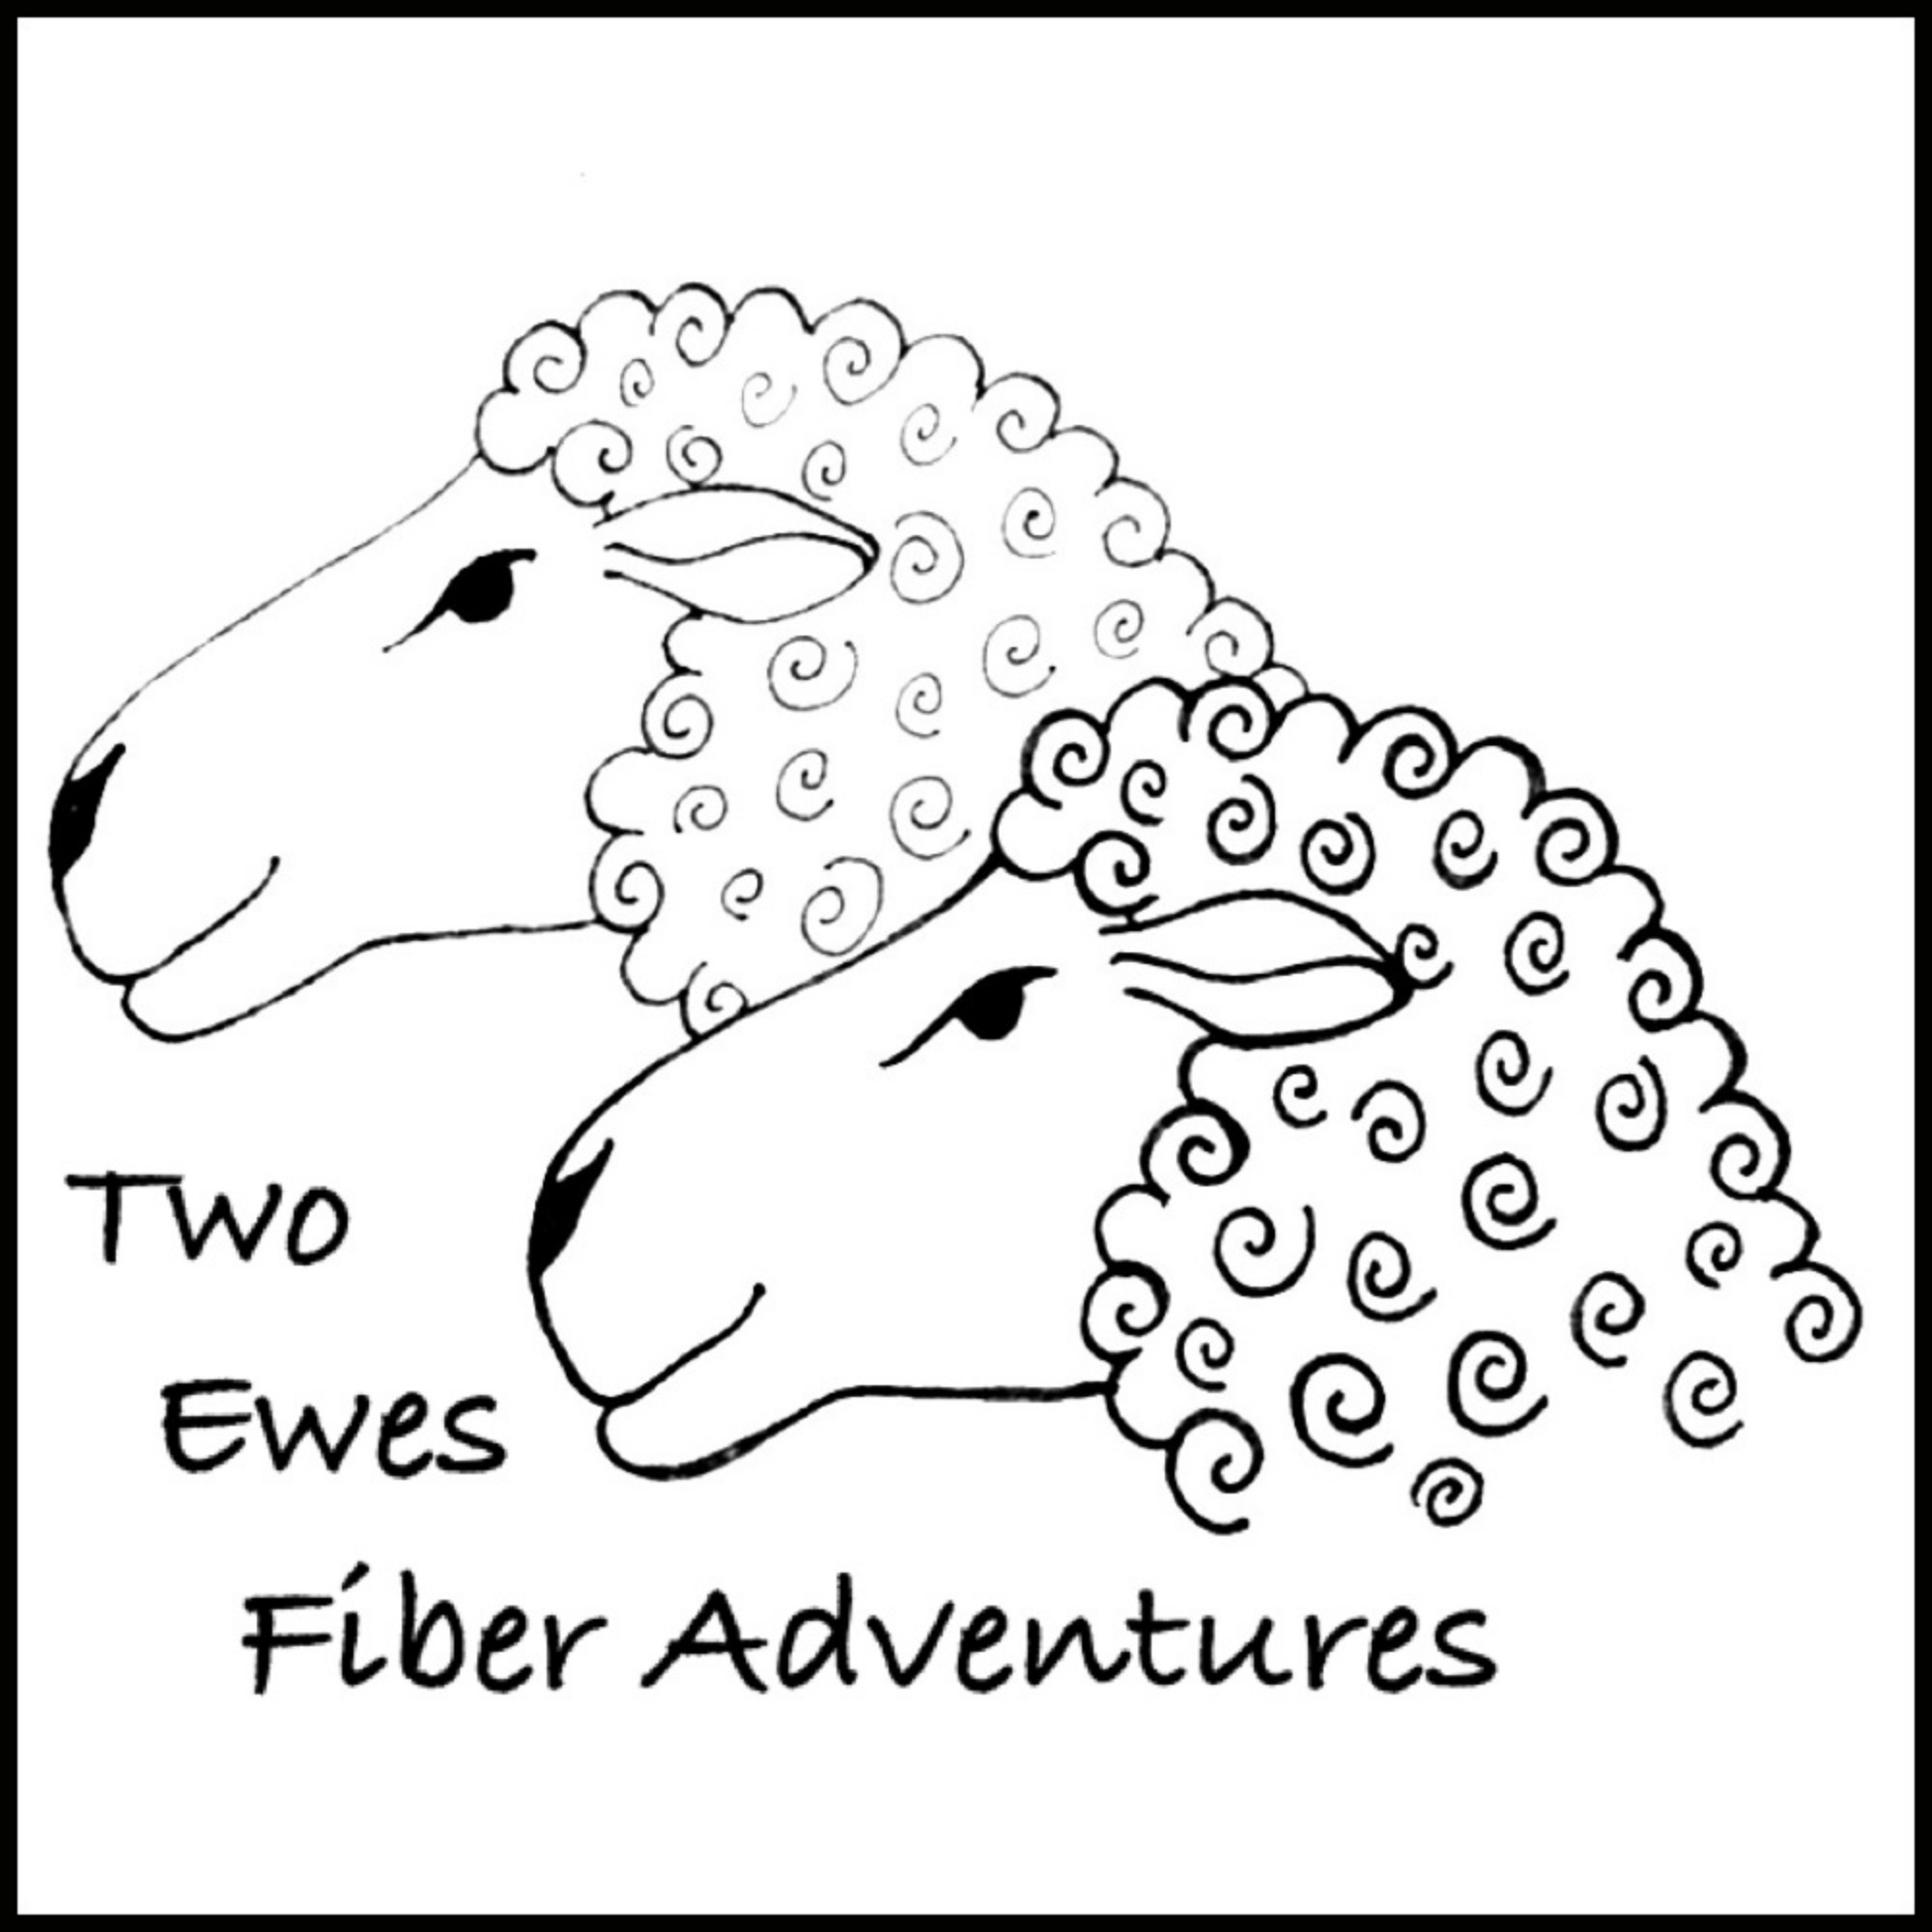 Two Ewes Fiber Adventures: A Podcast about Knitting, Spinning, Weaving, Crochet, Dyeing-- All the Ways to Play with Yarn and Wool